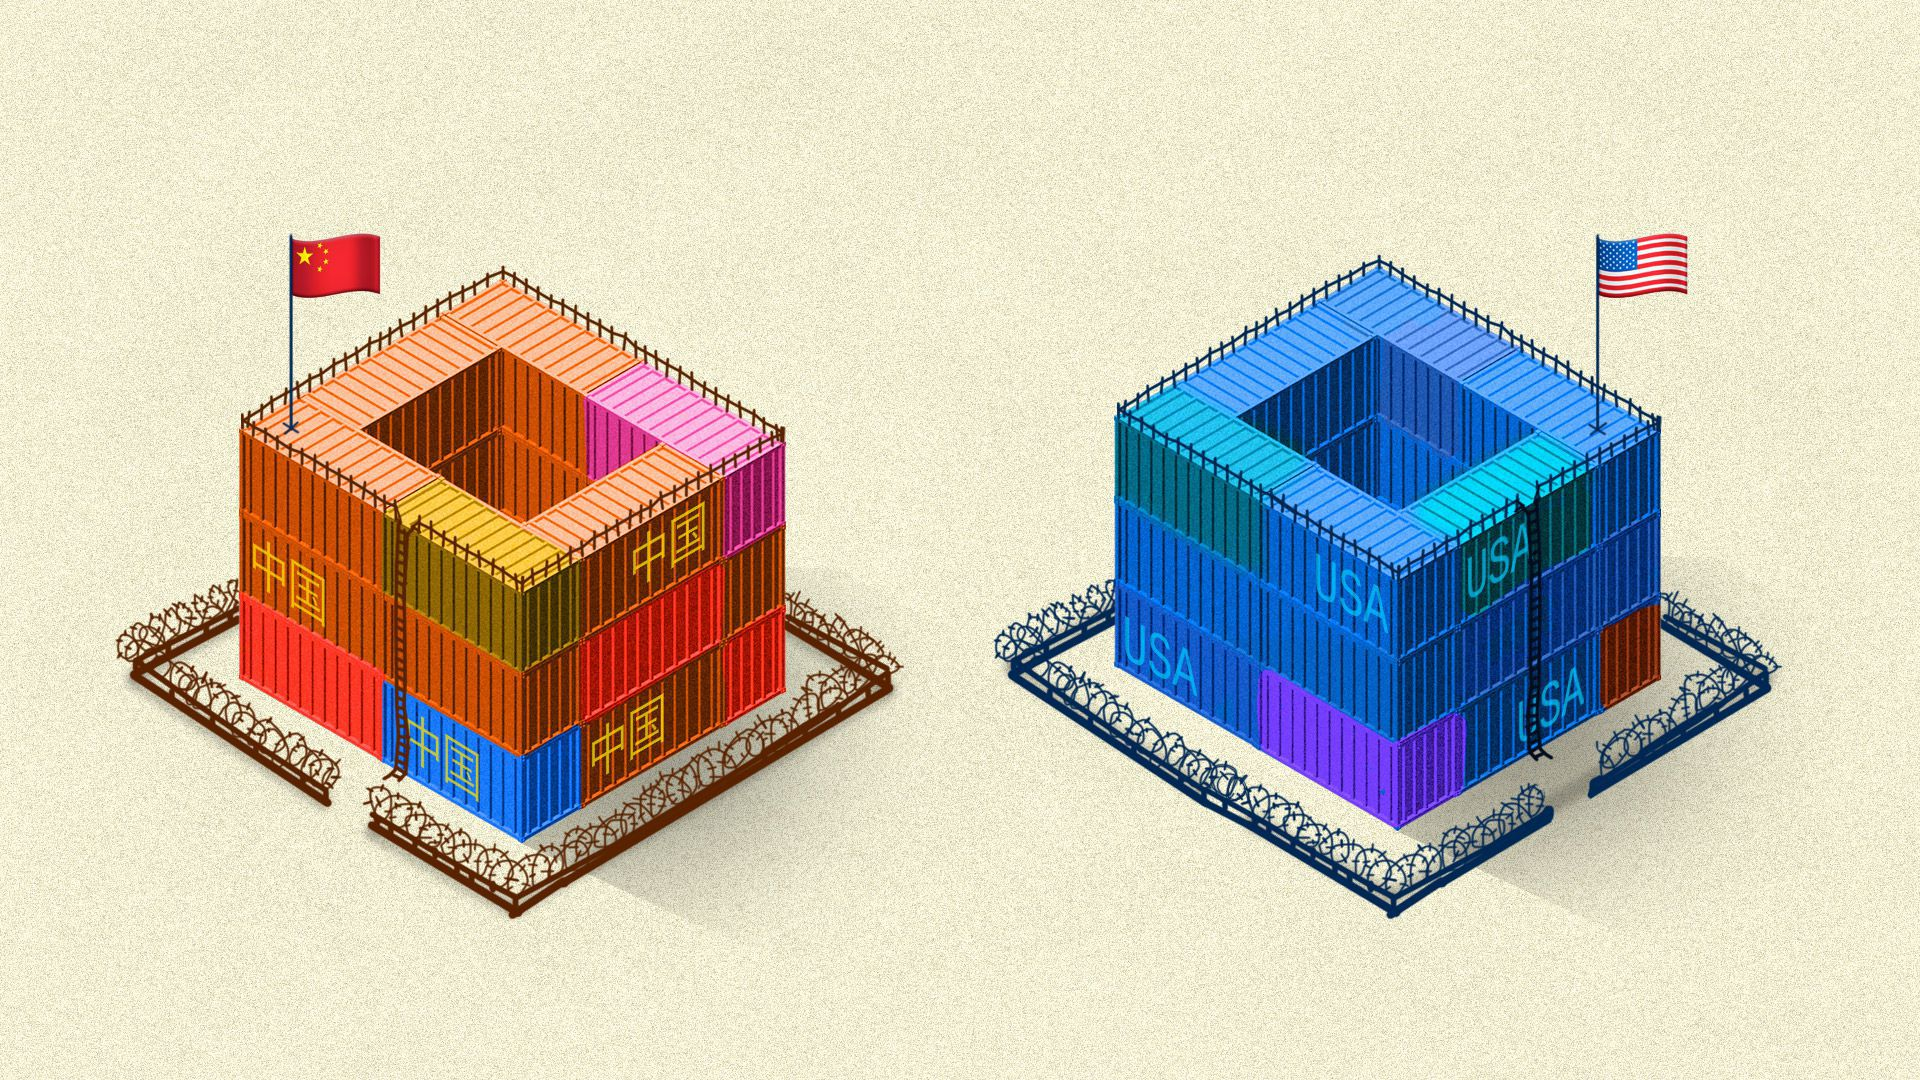 Illustration of China and U.S. shipping containers